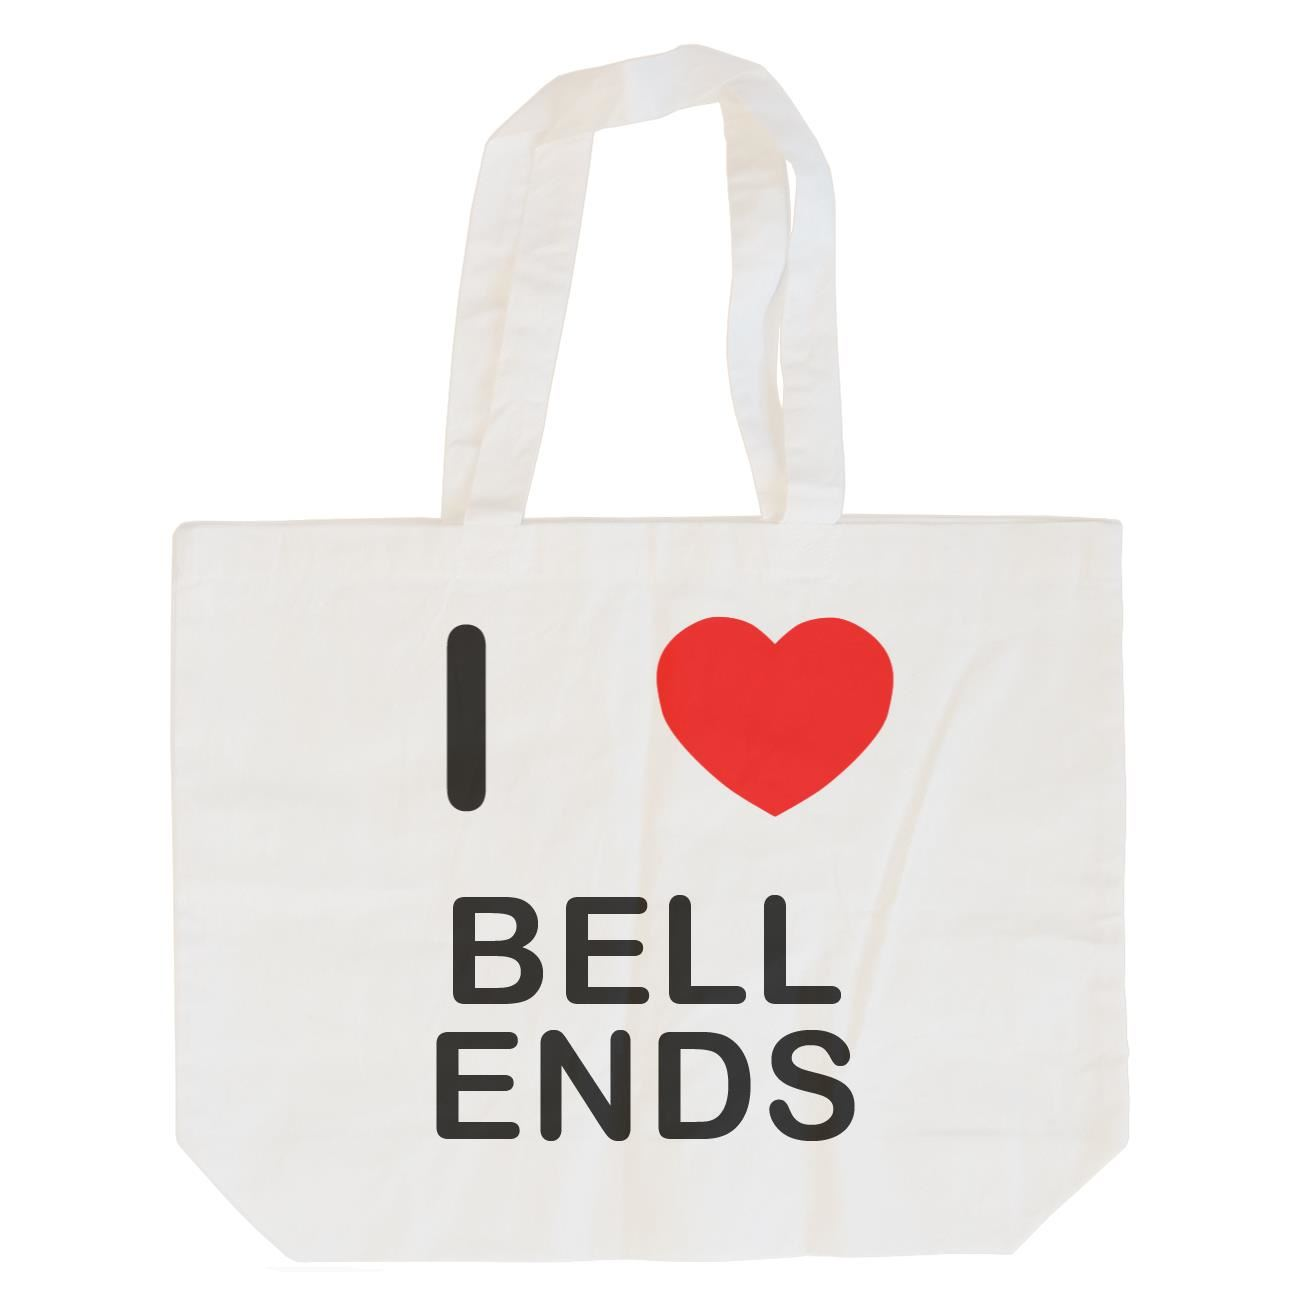 I Love B*ll Ends - Cotton Bag | Size choice Tote, Shopper or Sling